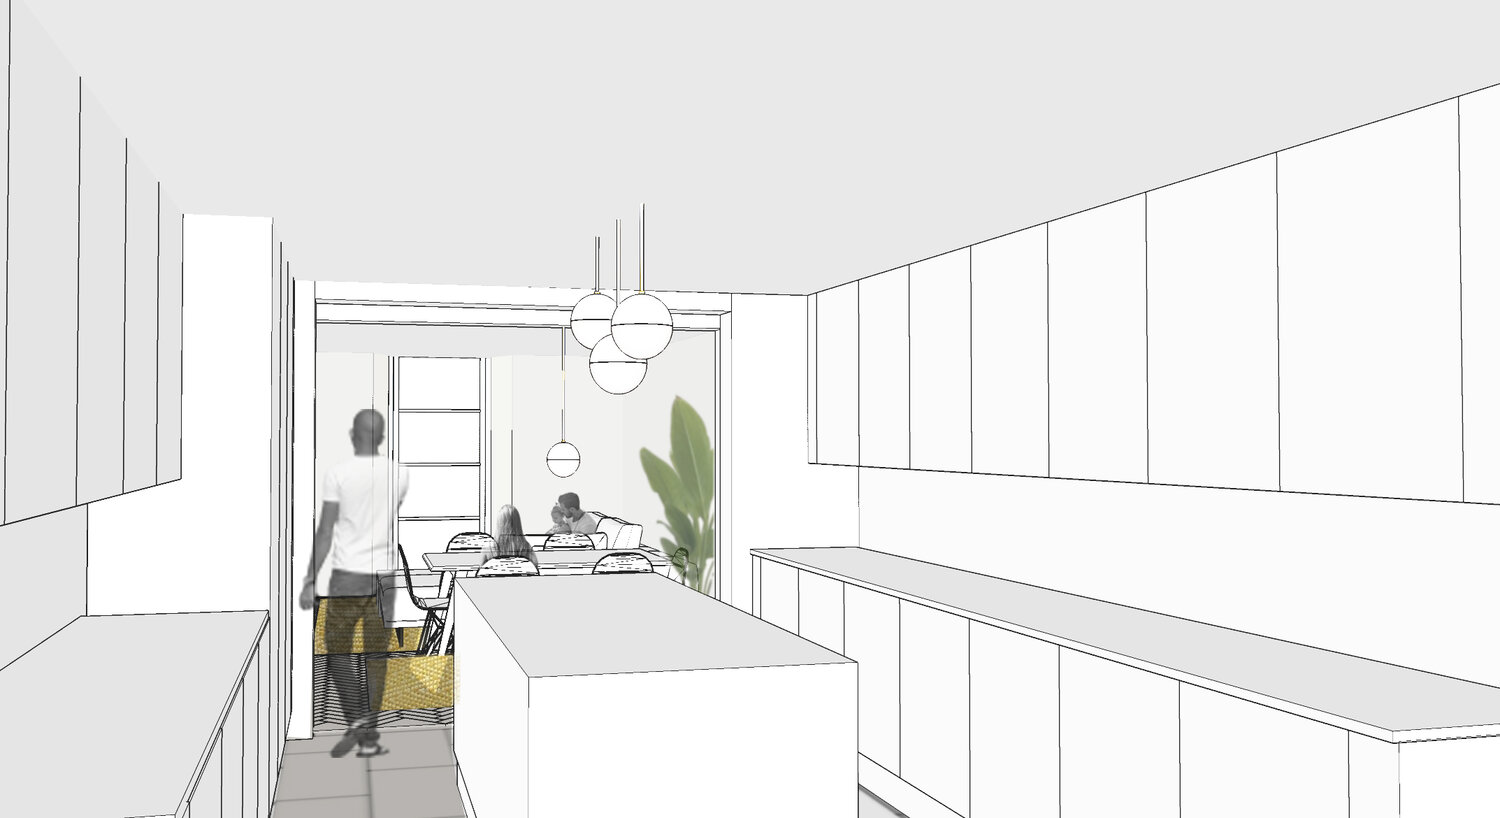 INTERNAL VIEW FROM PROPOSED KITCHEN